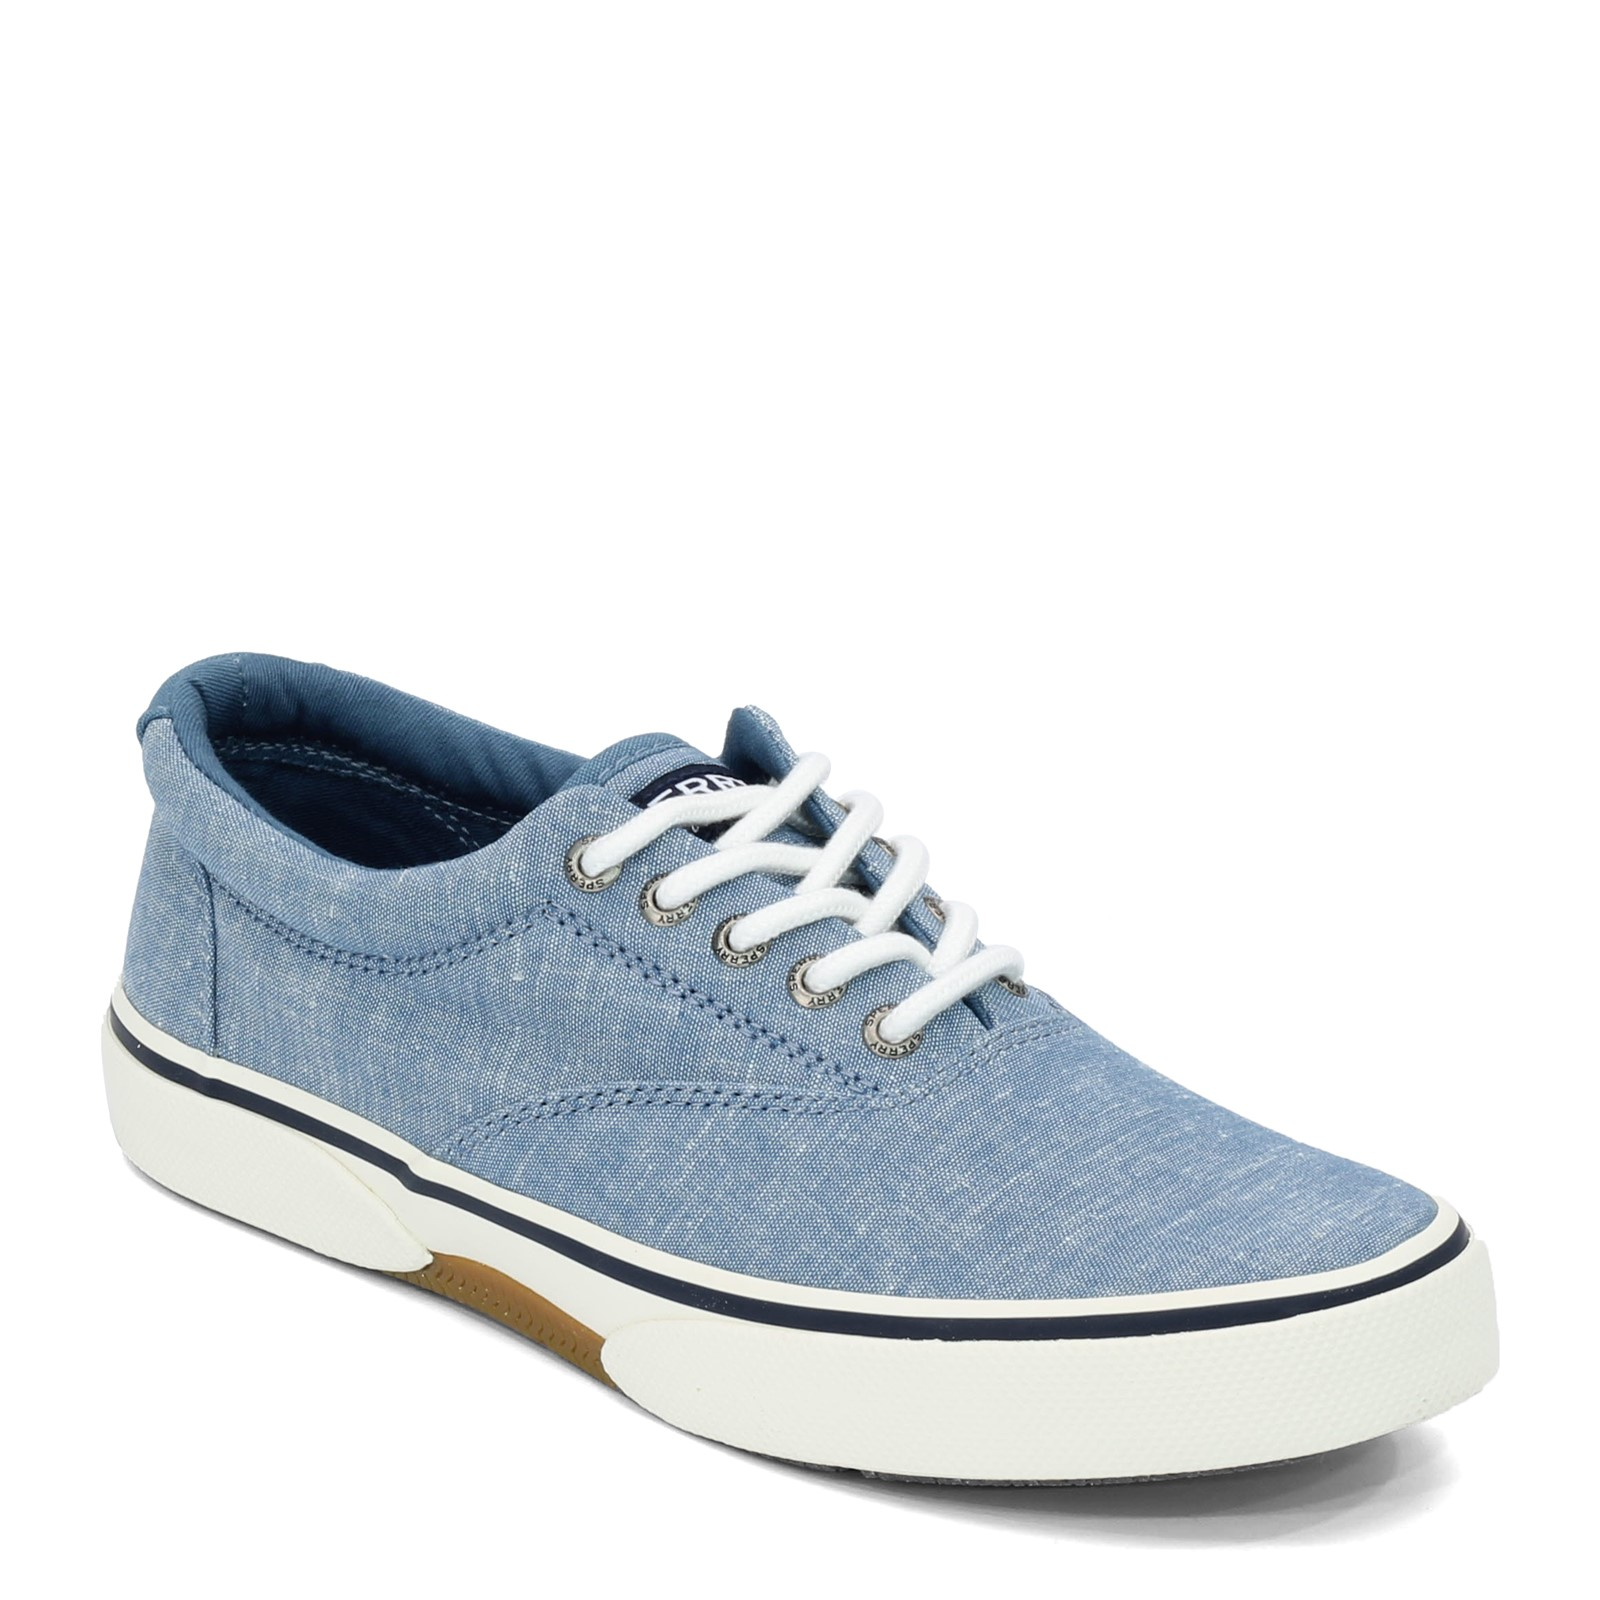 Men's Sperry, Halyard Sneaker